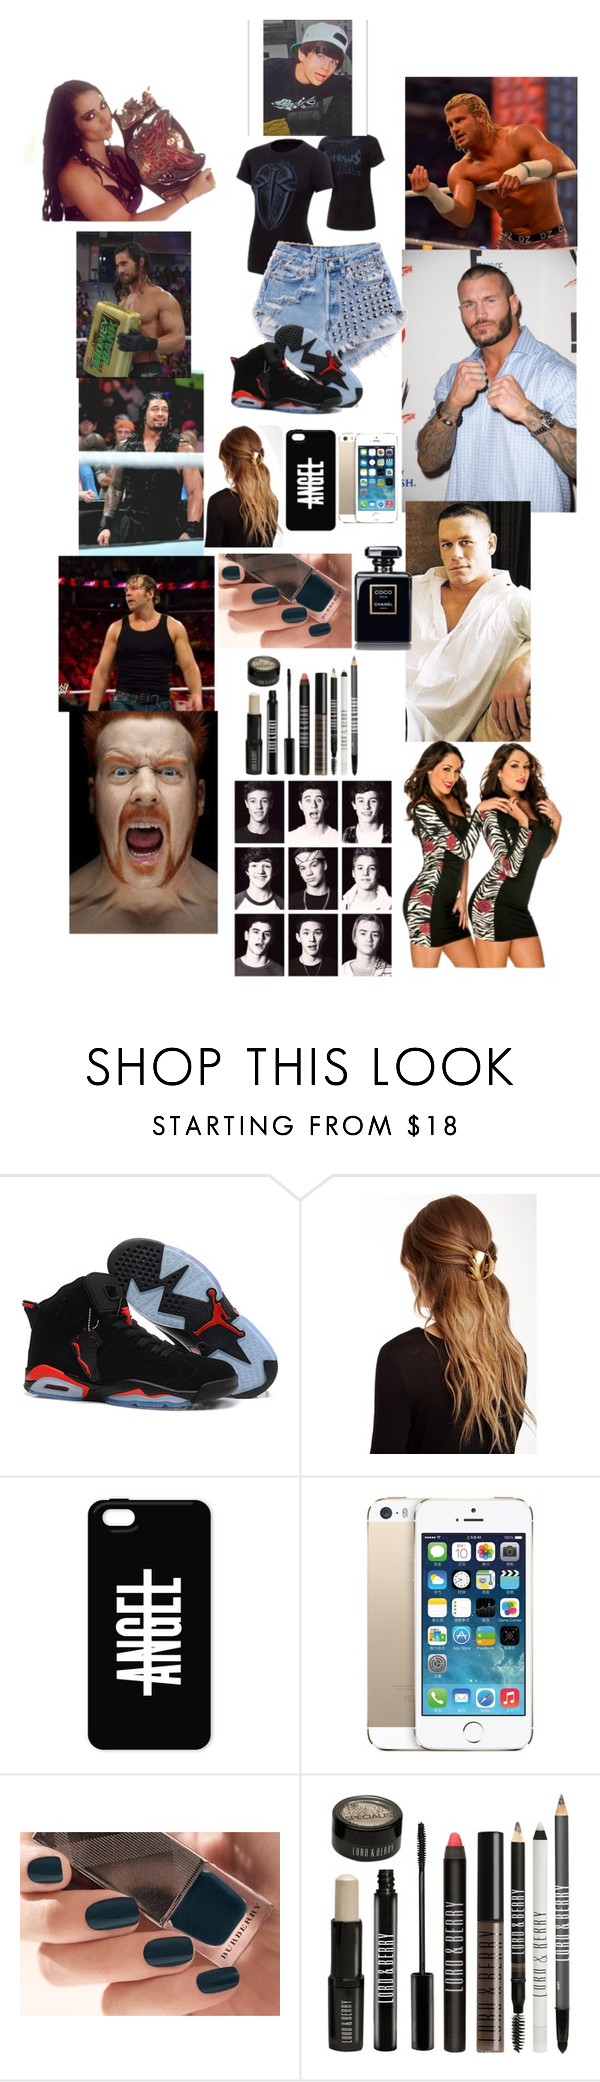 """Wwe with the Boys"" by grier2000 ❤ liked on Polyvore featuring WWE, Champion, CENA, France Luxe, Burberry and Lord & Berry"